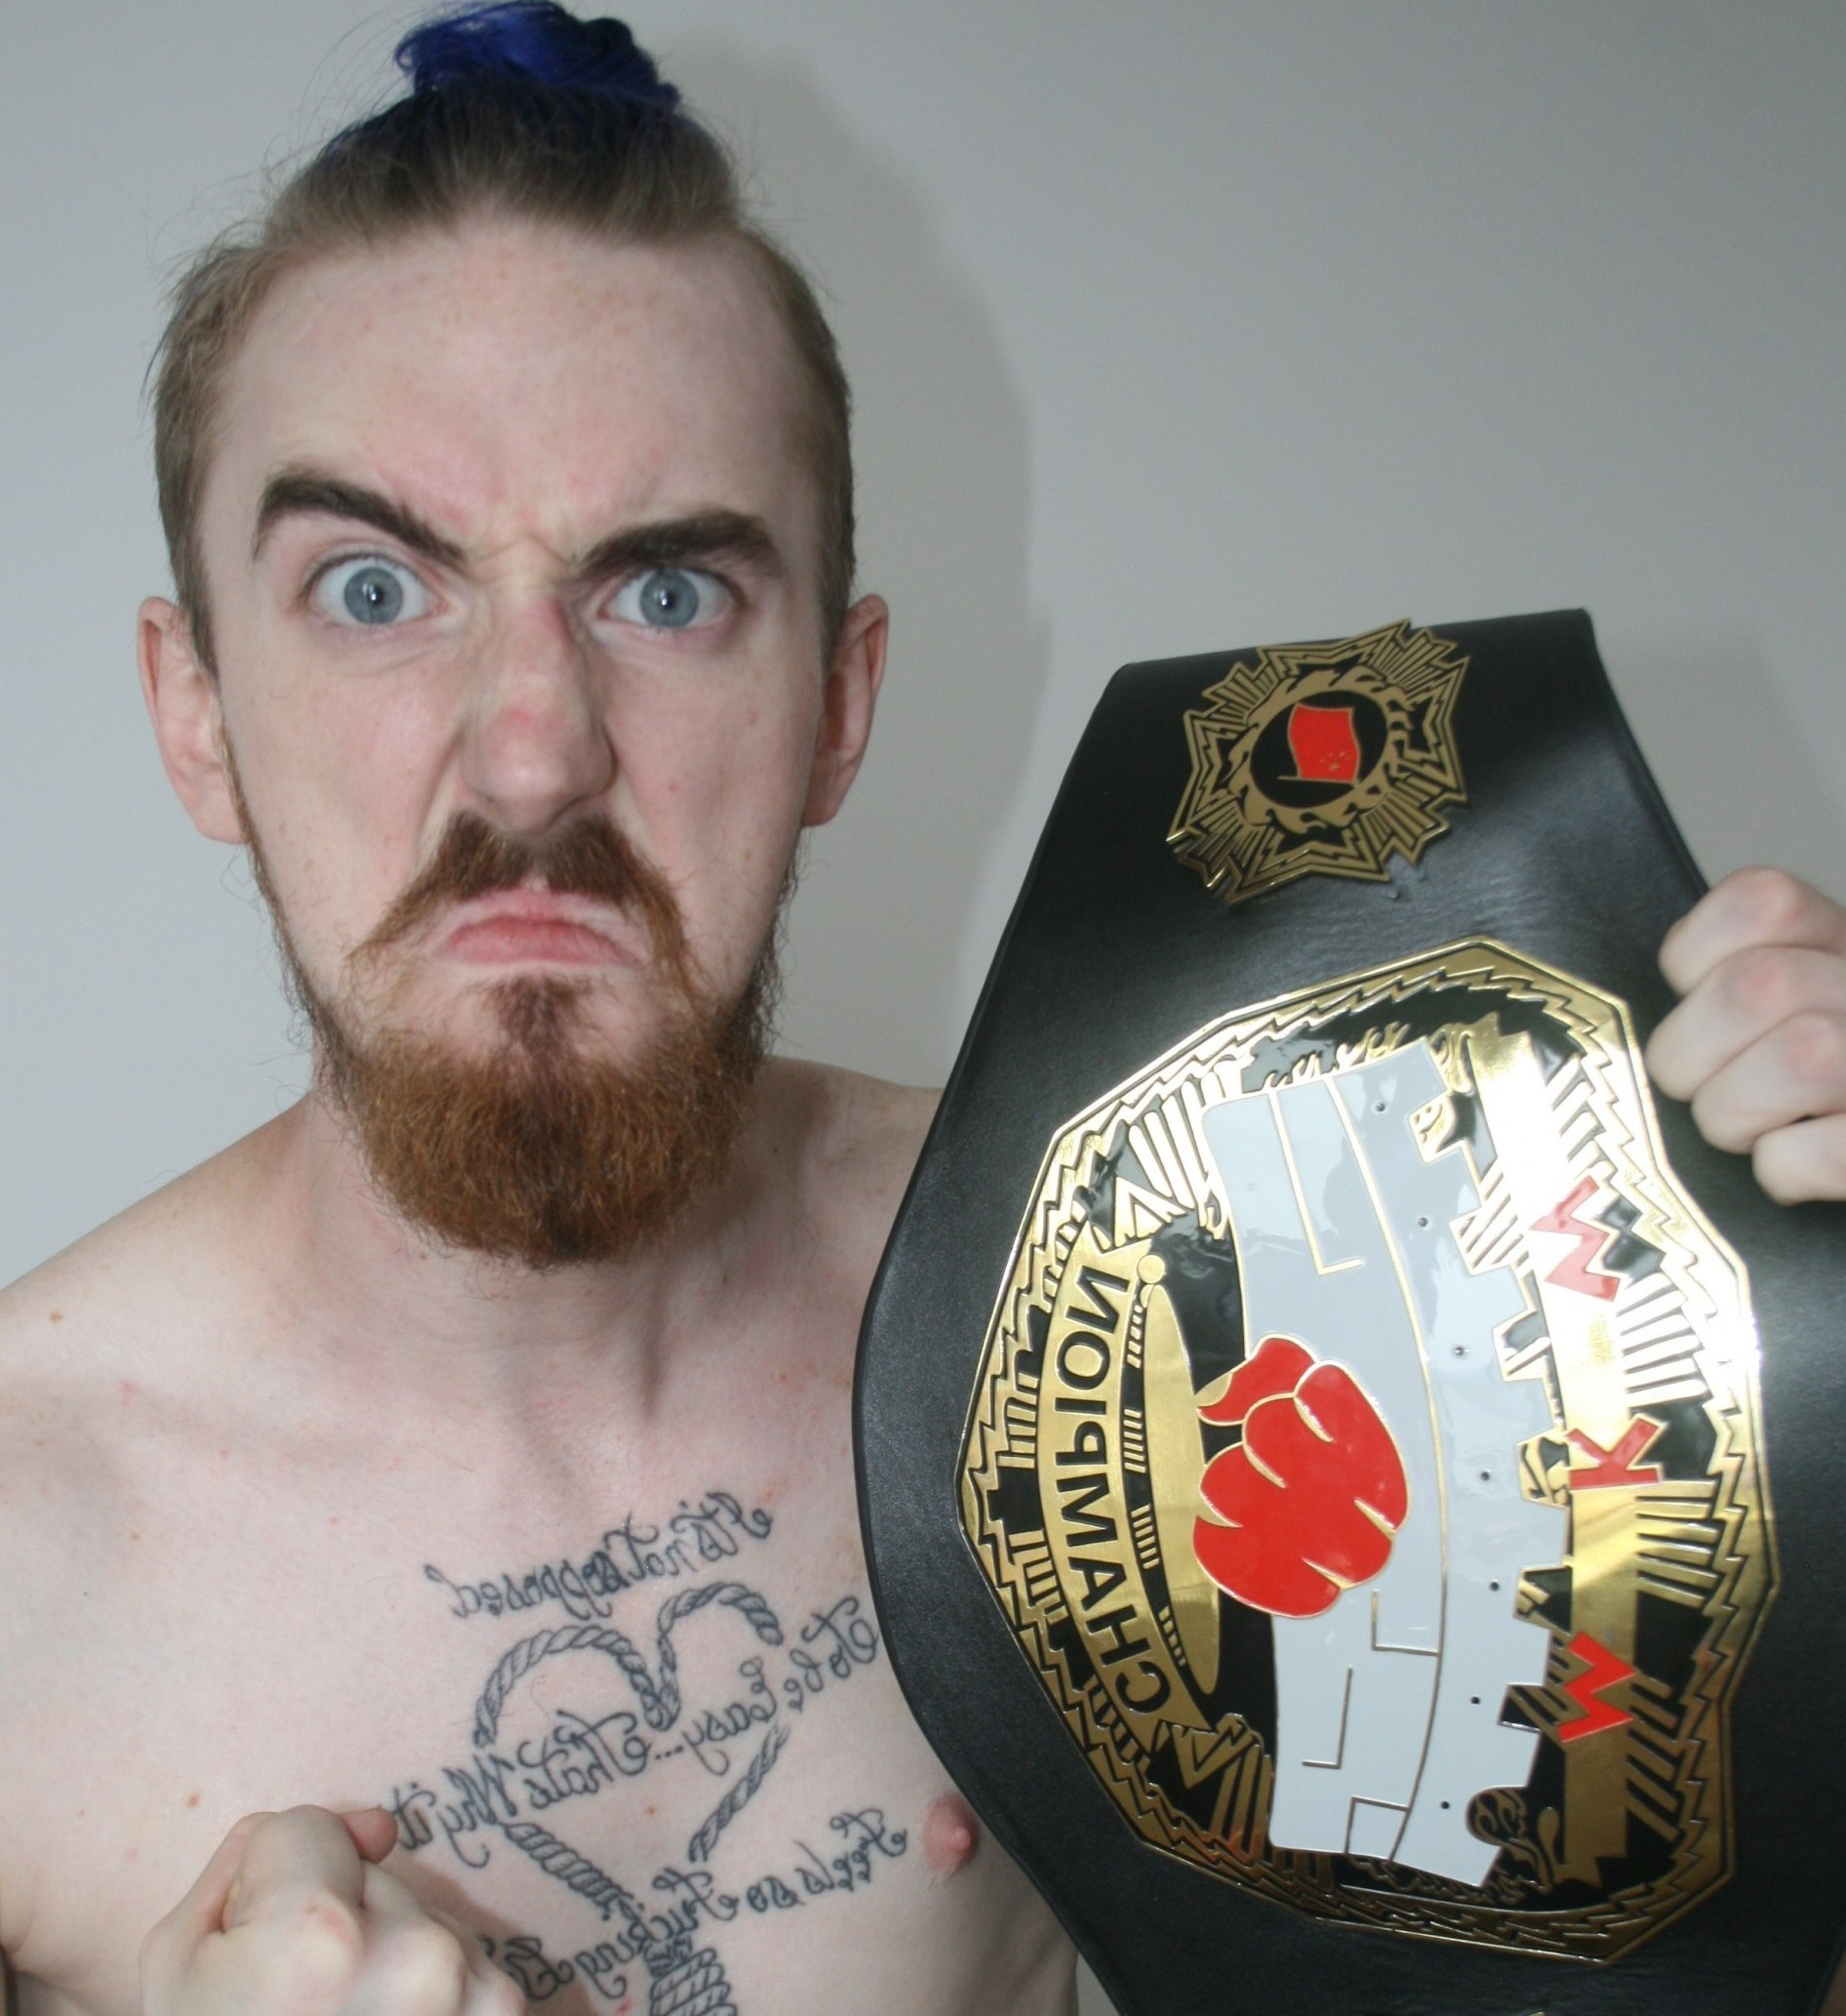 MKW Champion Dalton Bragg will Fight for Death Match Title in America